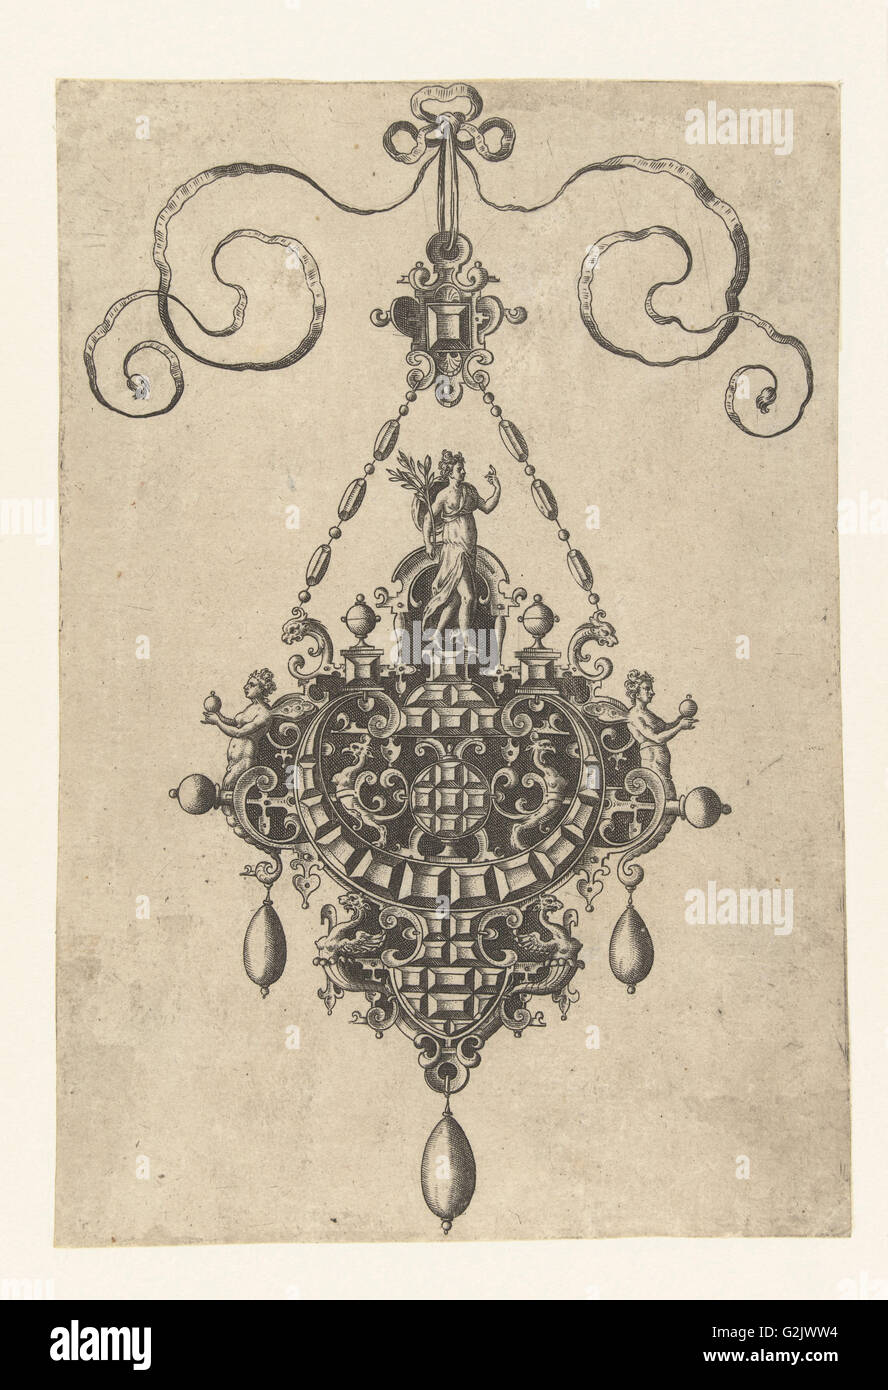 Pendant which a goddess with laurel, Anonymous, Hans Collaert (I), Philips Galle, 1581 - Stock Image